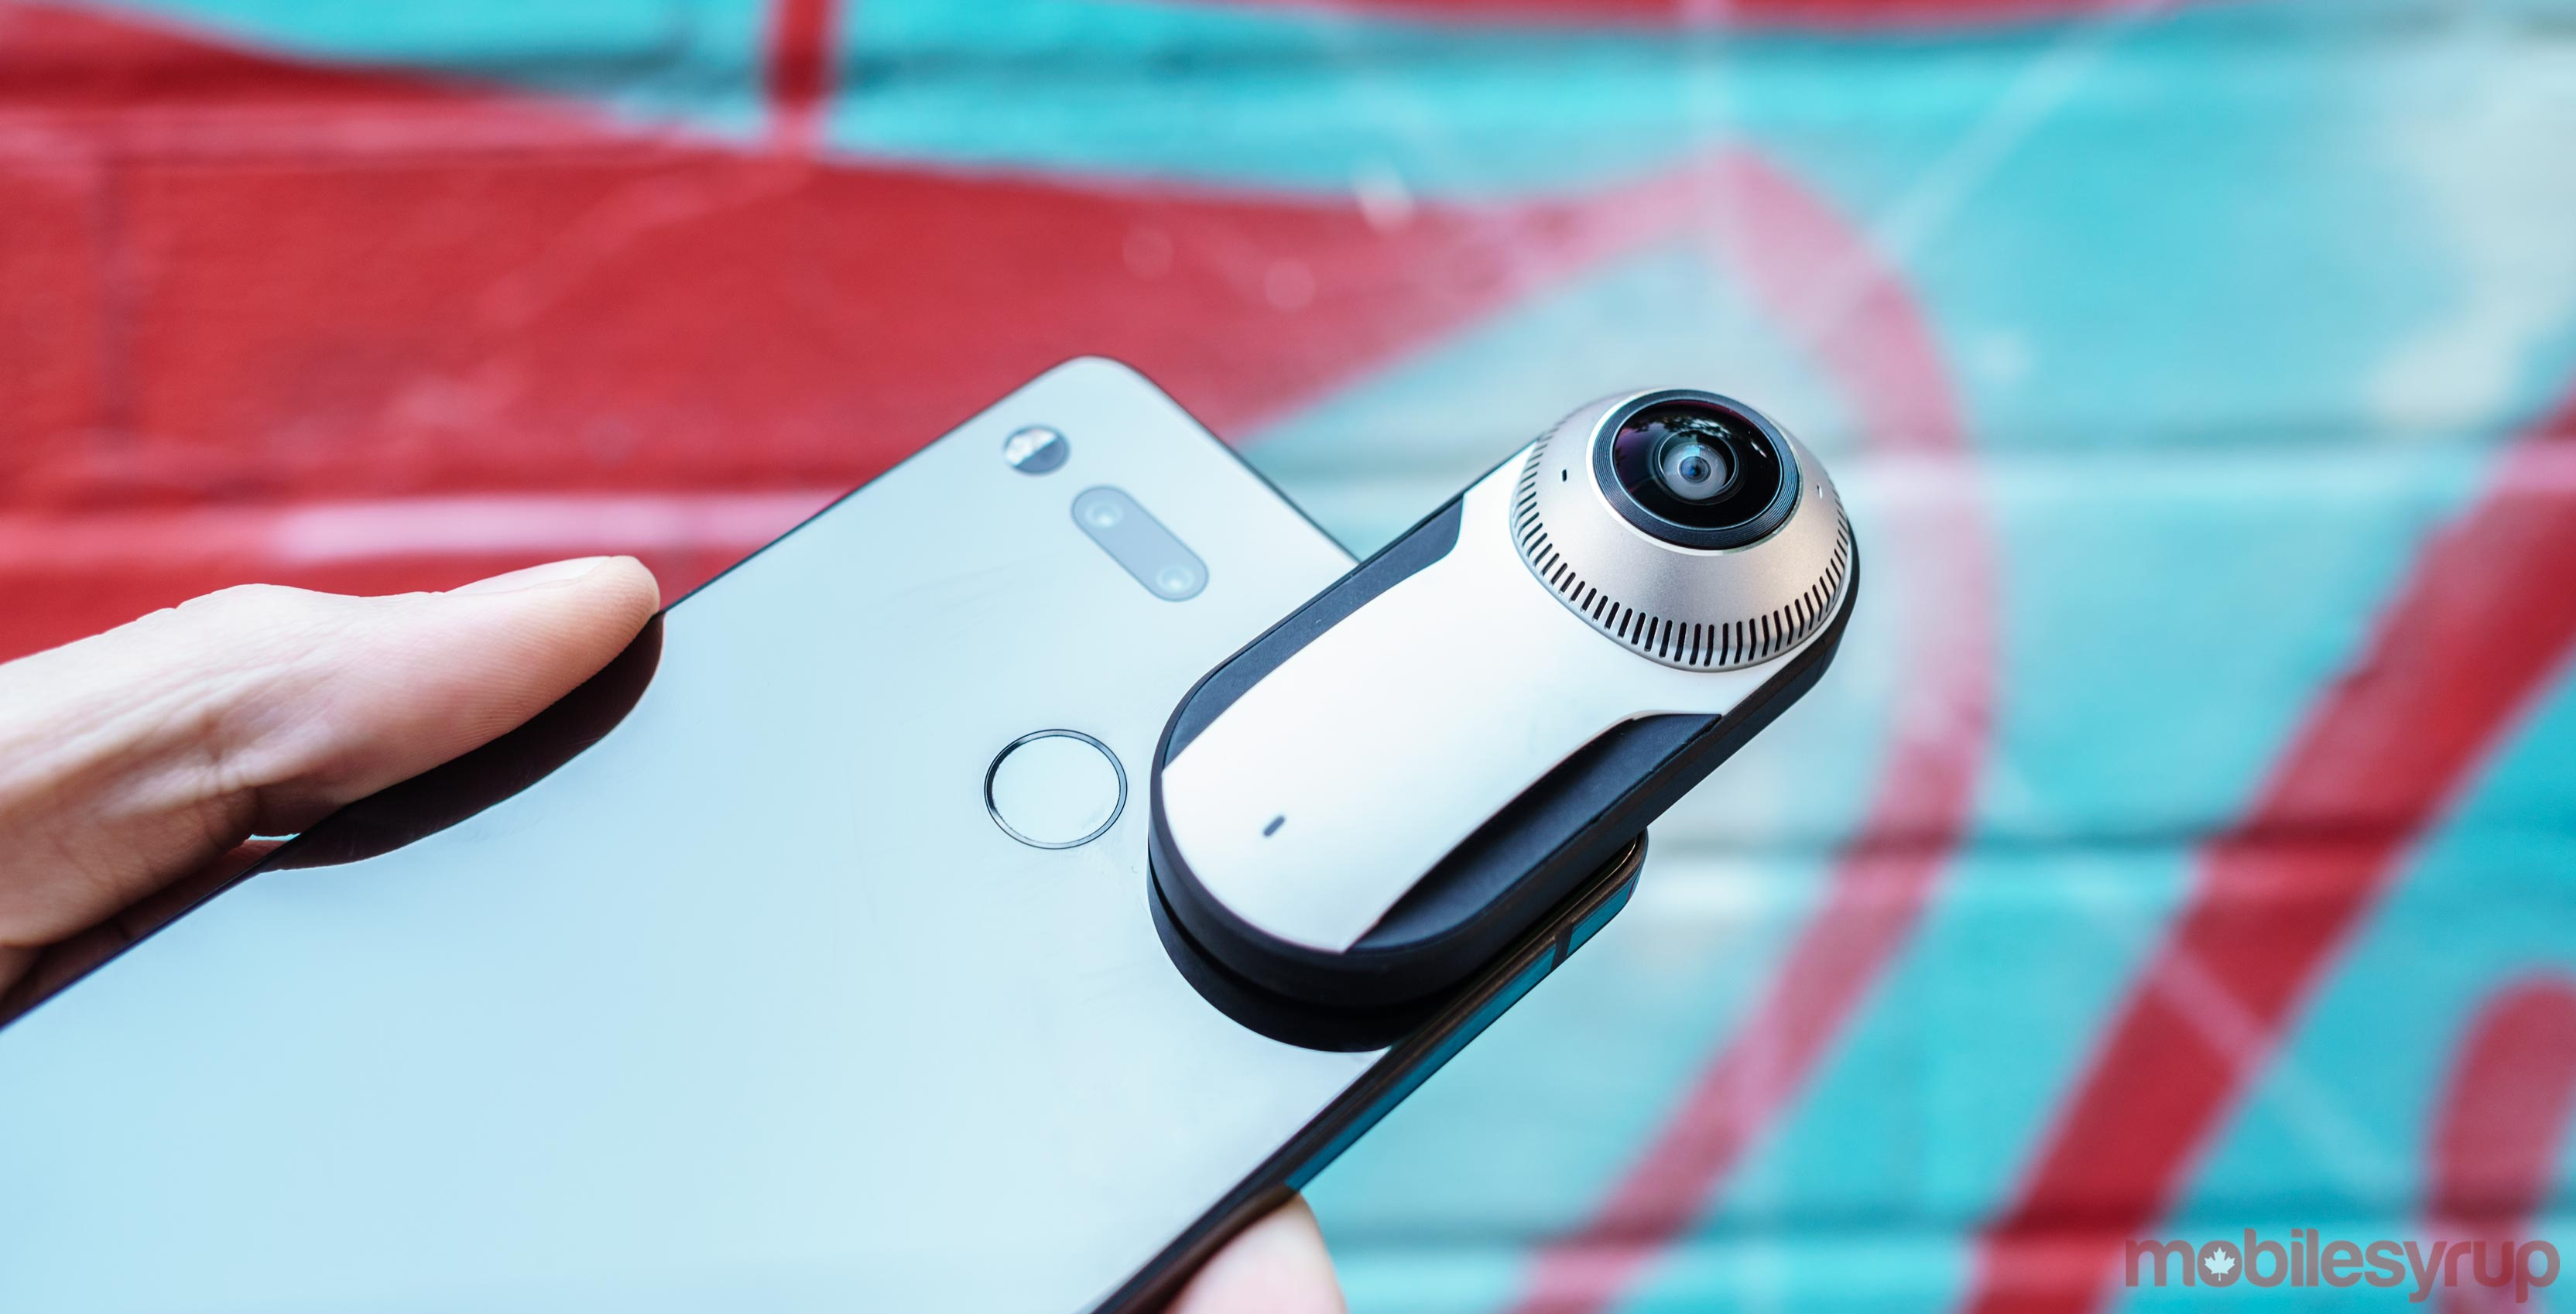 Essential Phone with Essential 360 Camera